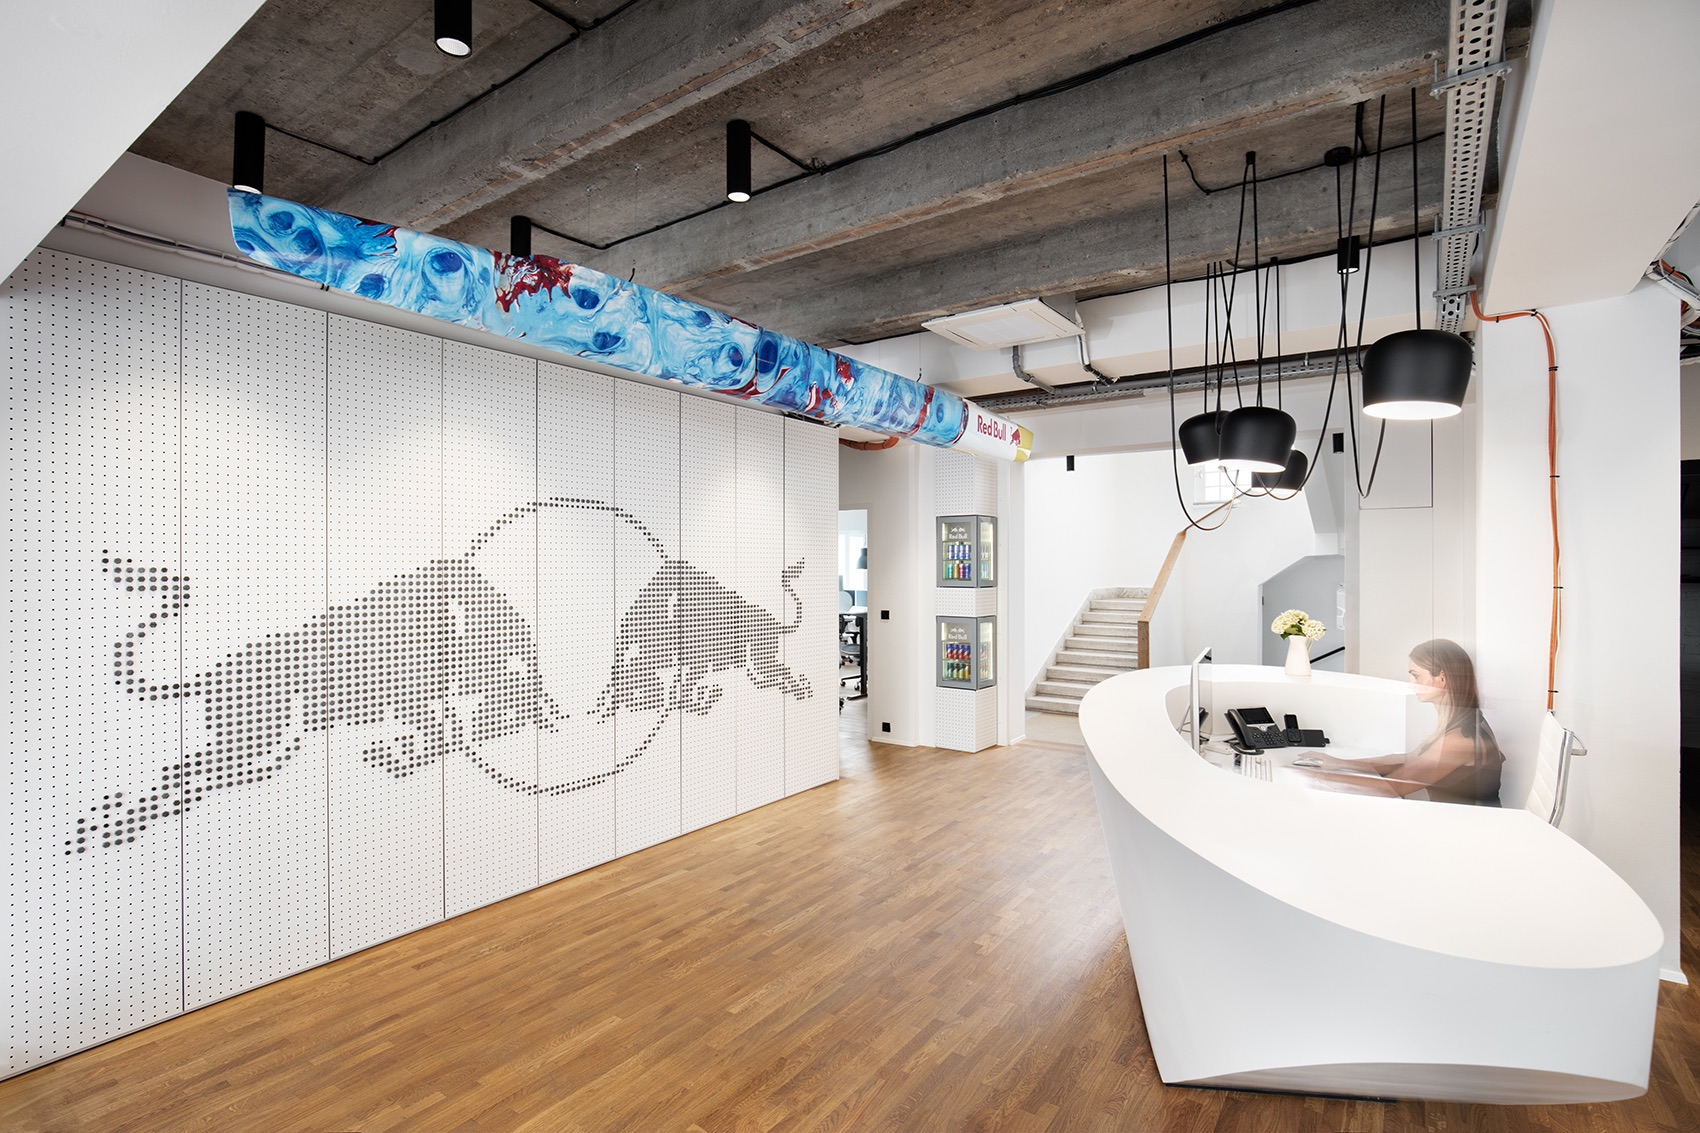 redbull-prague-office-5